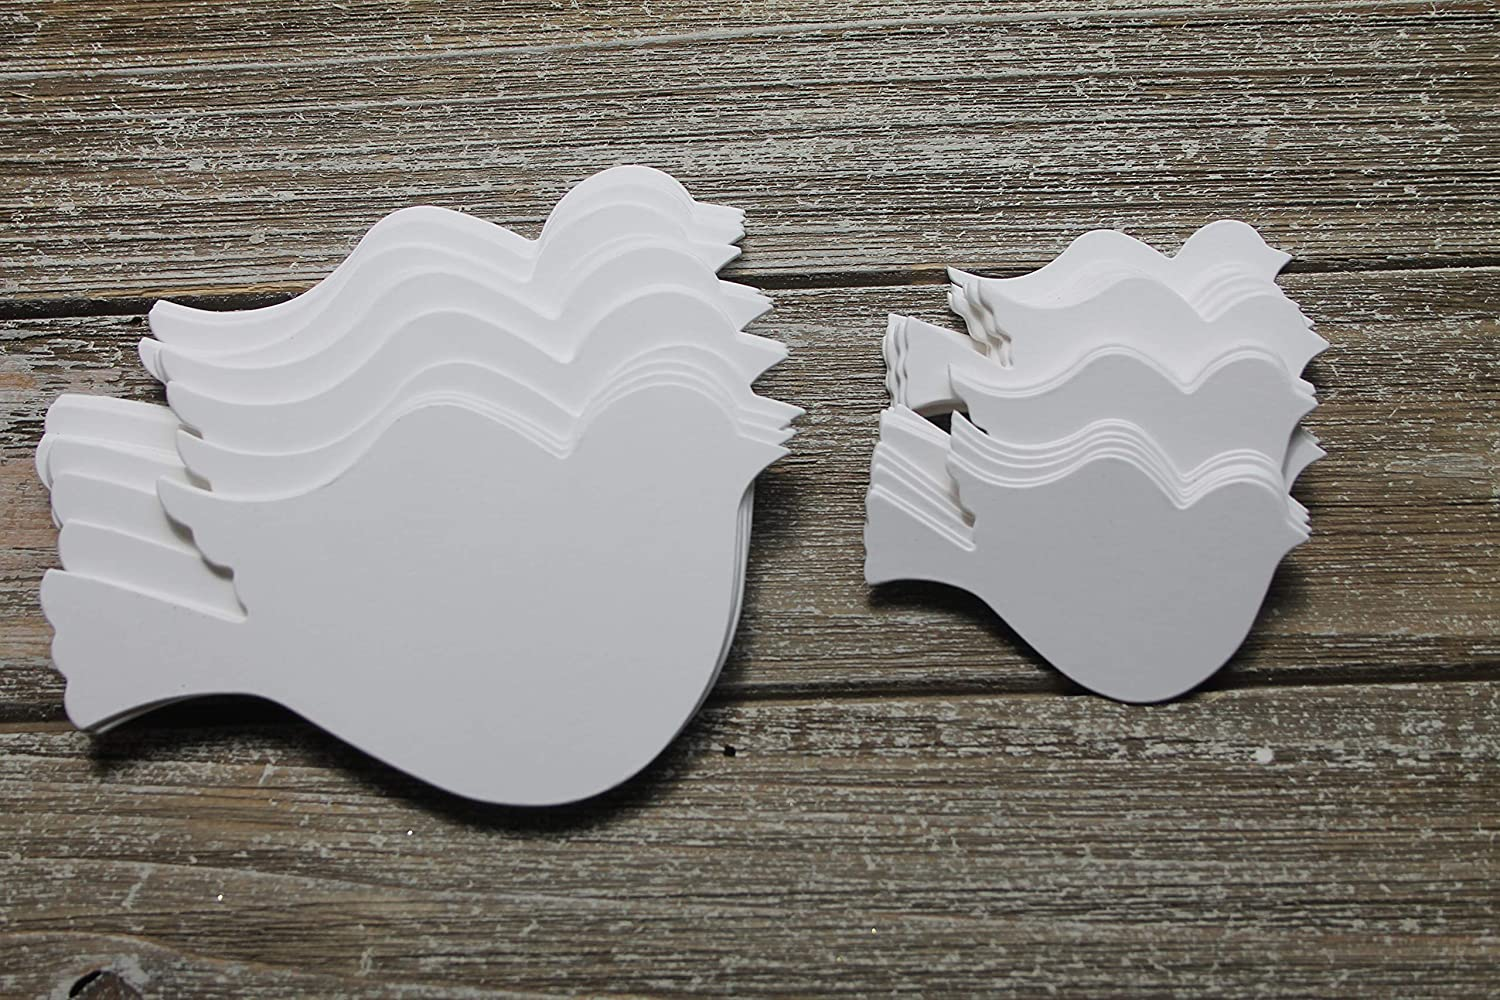 25 large or small birds white or ivory cardstock die cuts for weddings & more